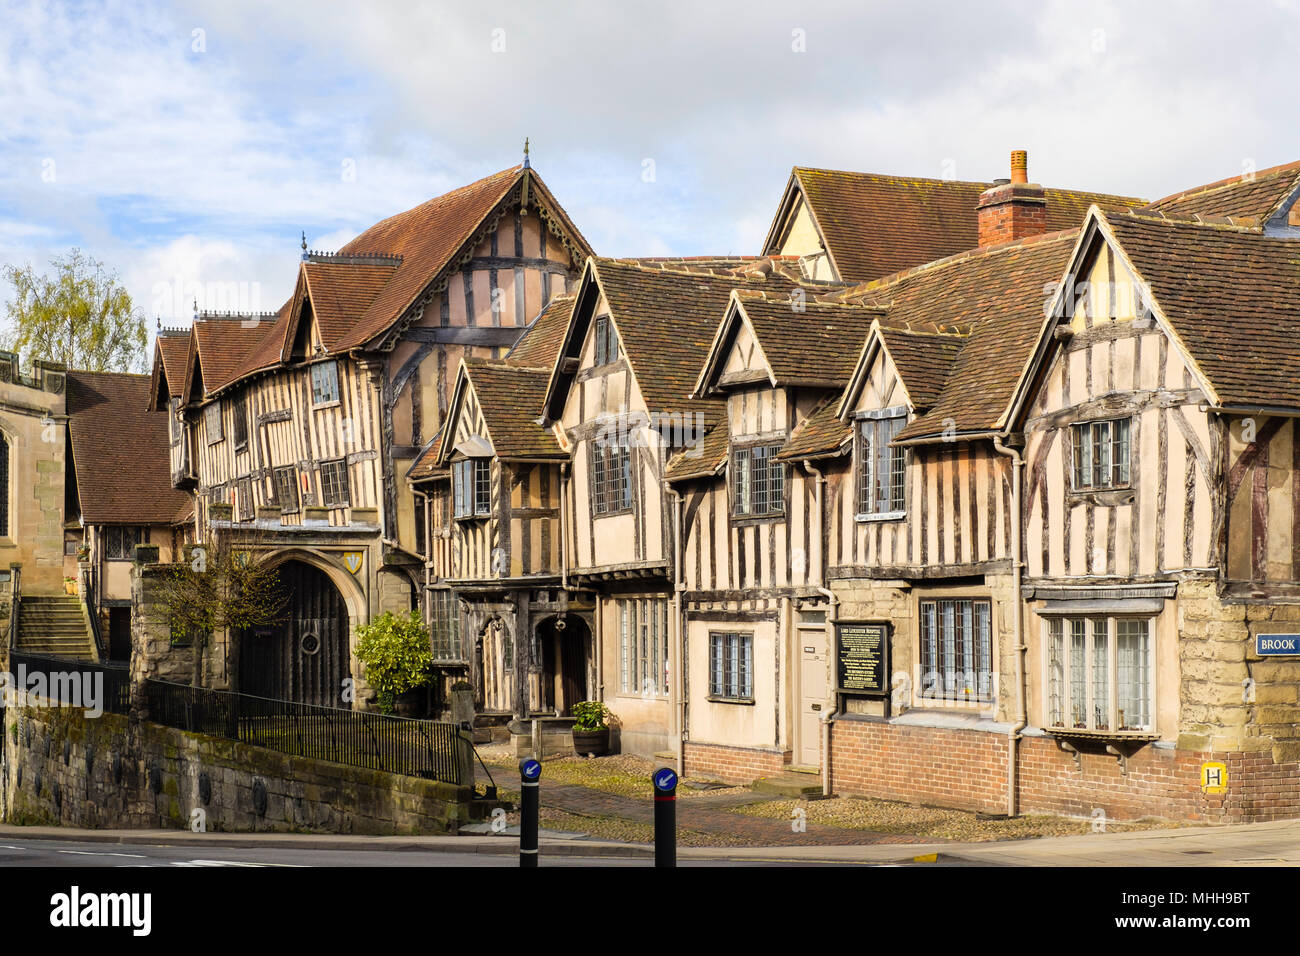 Medieval buildings of Lord Leyster Hospital. West Gate, Warwick, Warwickshire, West Midlands, England, UK, Great Britain - Stock Image